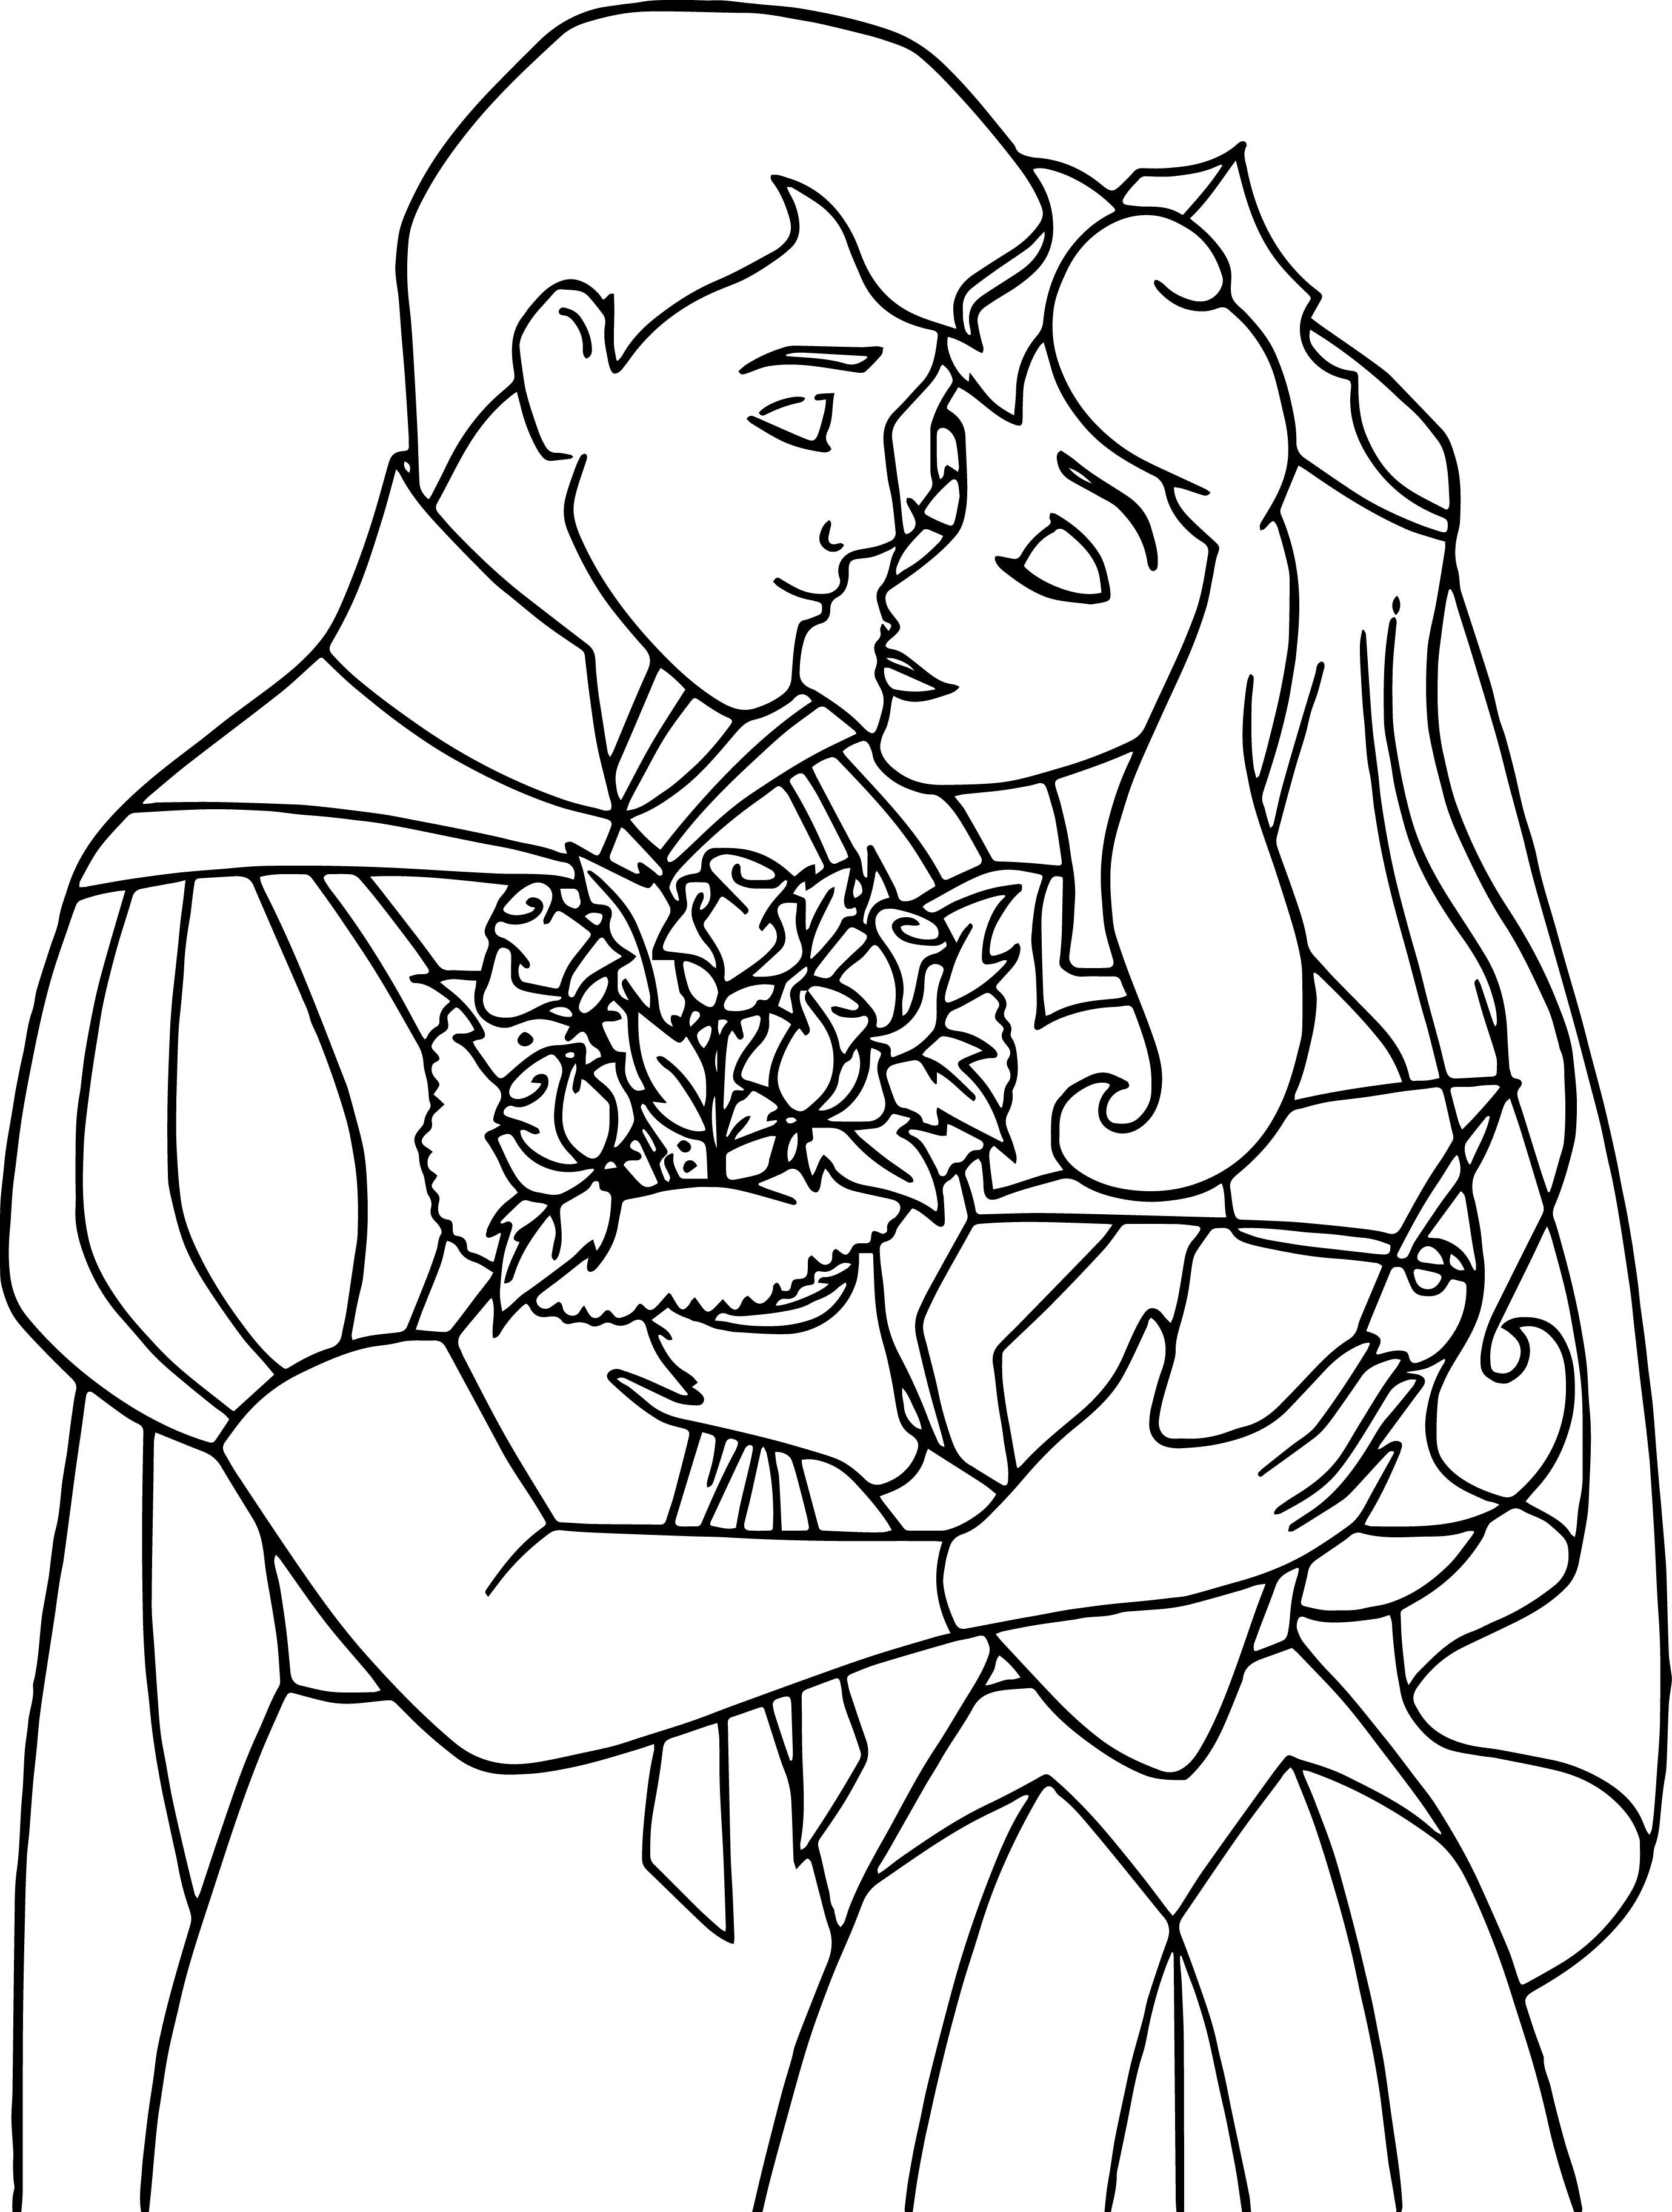 Disney Aurora and Phillip Coloring Pages 05